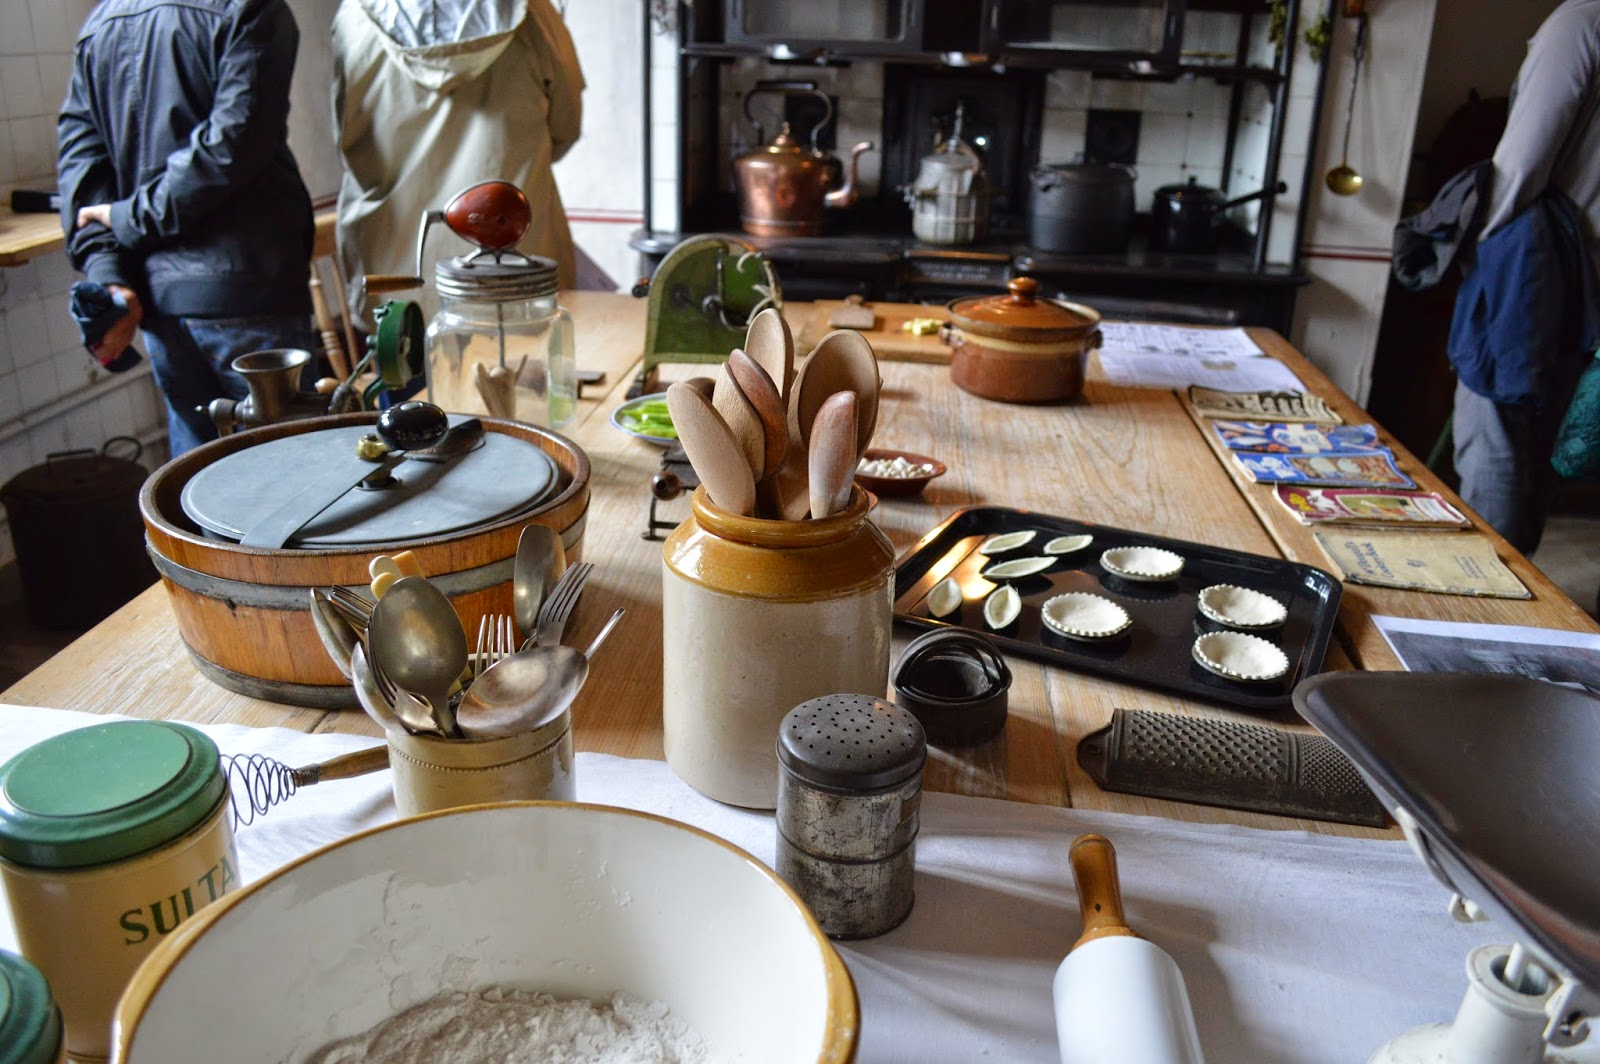 kitchen, Sudbury Hall, photos, photograph, historical properties, BBC Pride and Prejudice film location, National Trust, review, derby, 17th century, inside, outside, visit